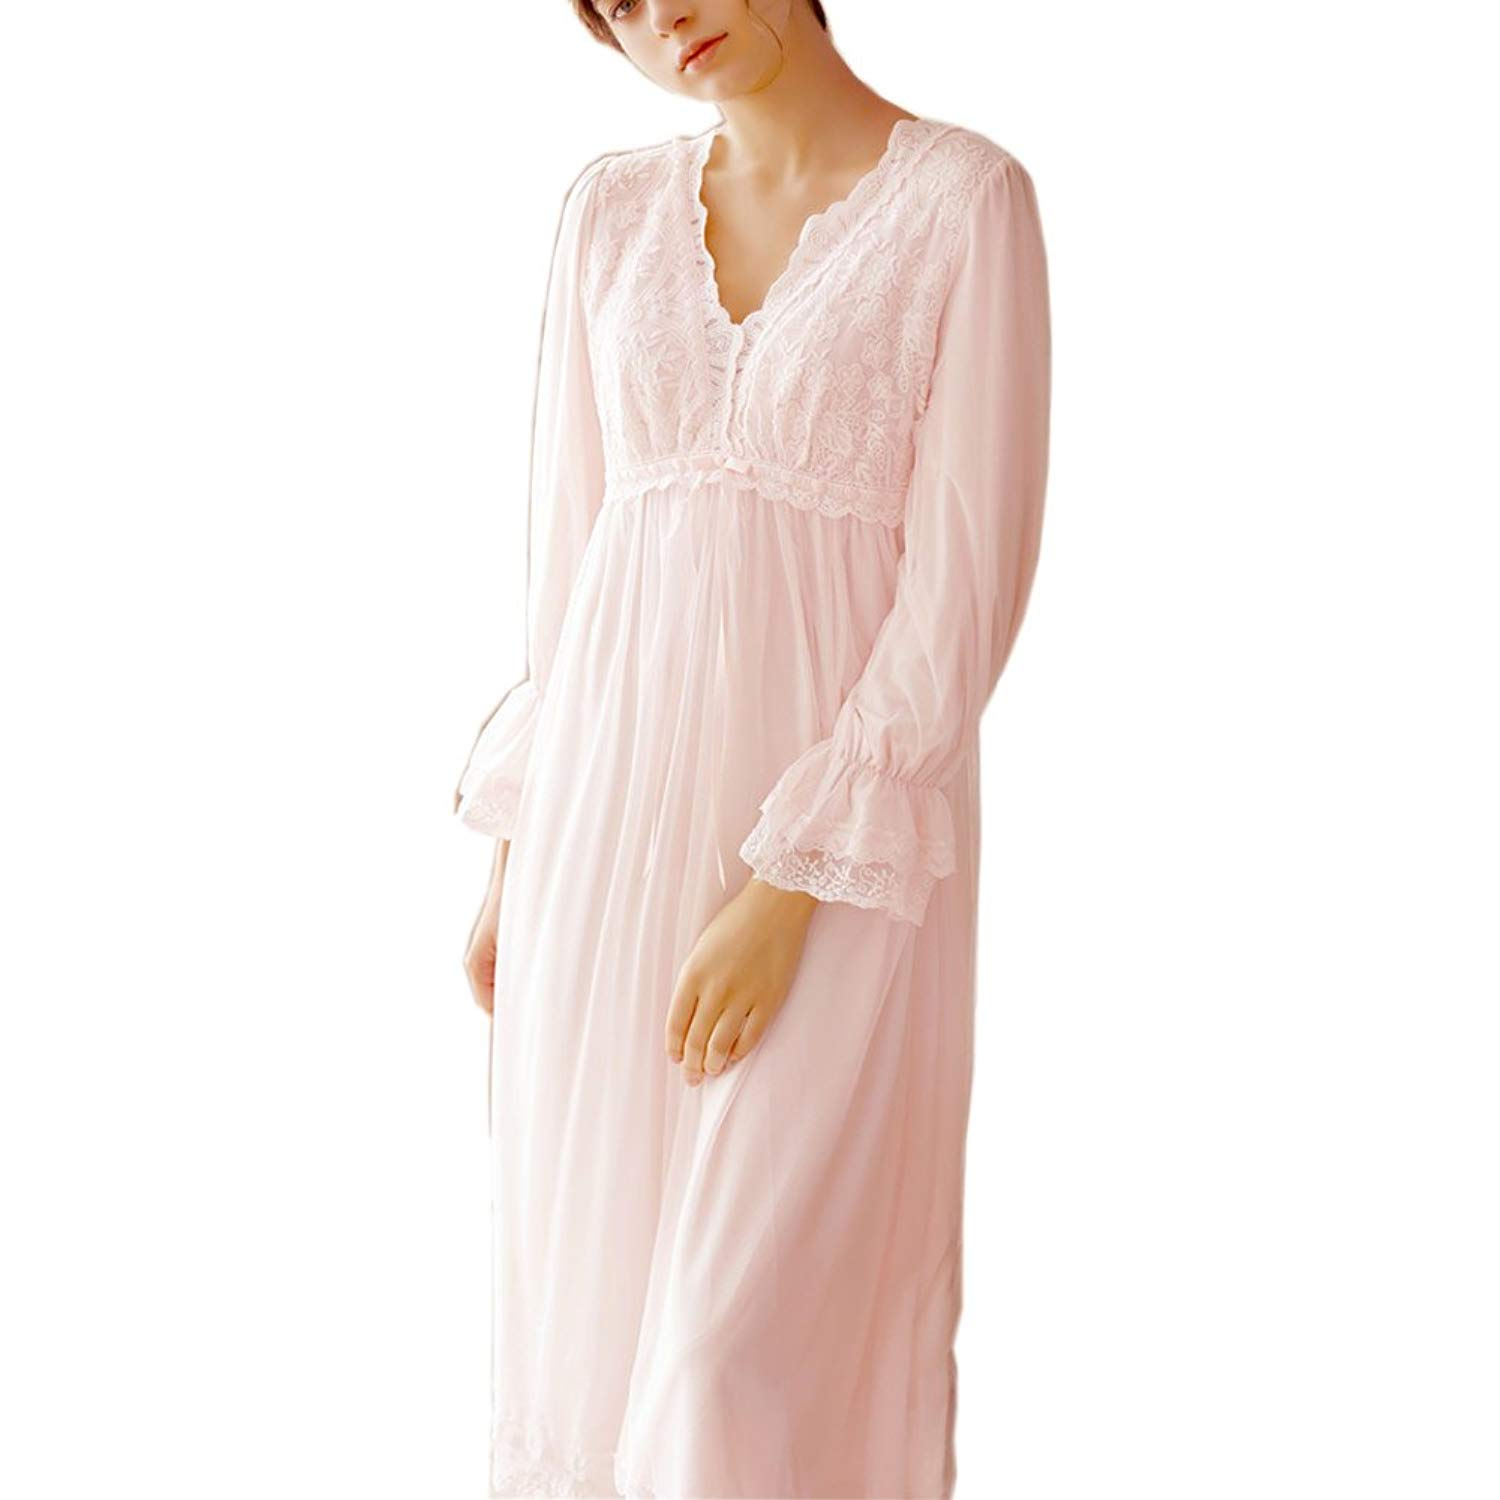 cba5c19649 Get Quotations · Singingqueen Women s Nightgowns Victorian Vintage  Nightdress Long Sheer Pajamas Sleepwear Lounger